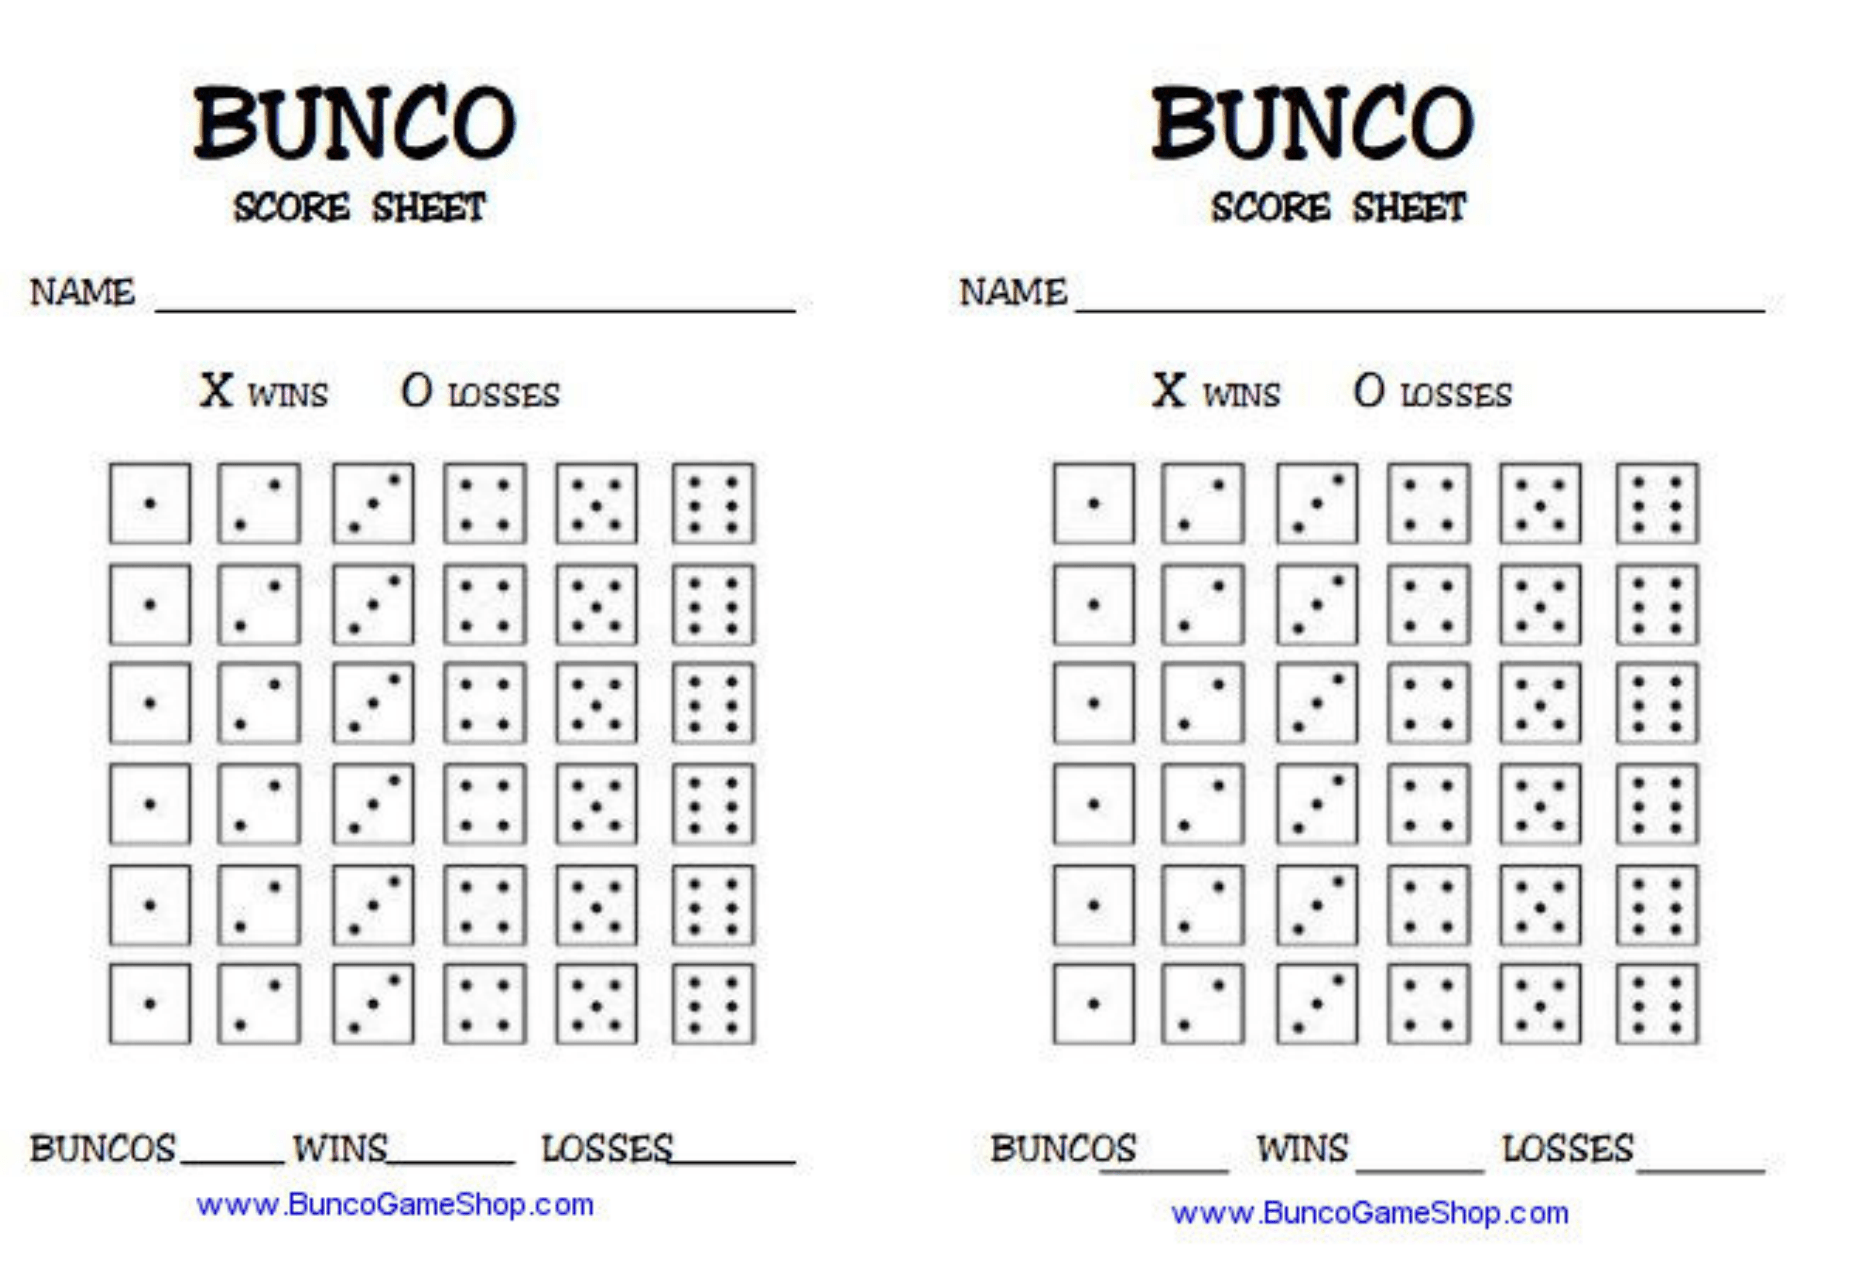 photo relating to Free Printable Bunco Score Cards identify Resume Ranking Sheet Address Letter And Resume Samples By way of Market